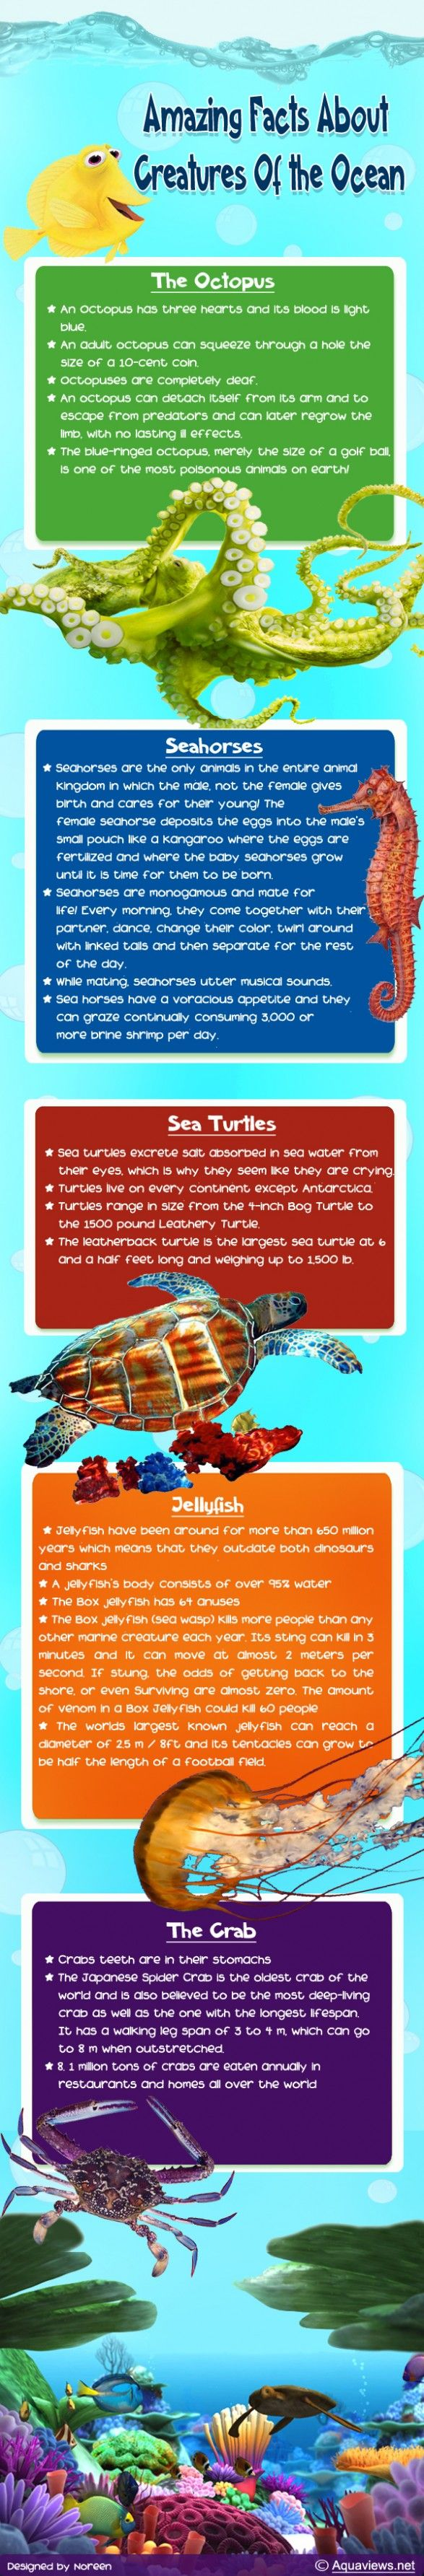 Amazing facts about creatures of the ocean